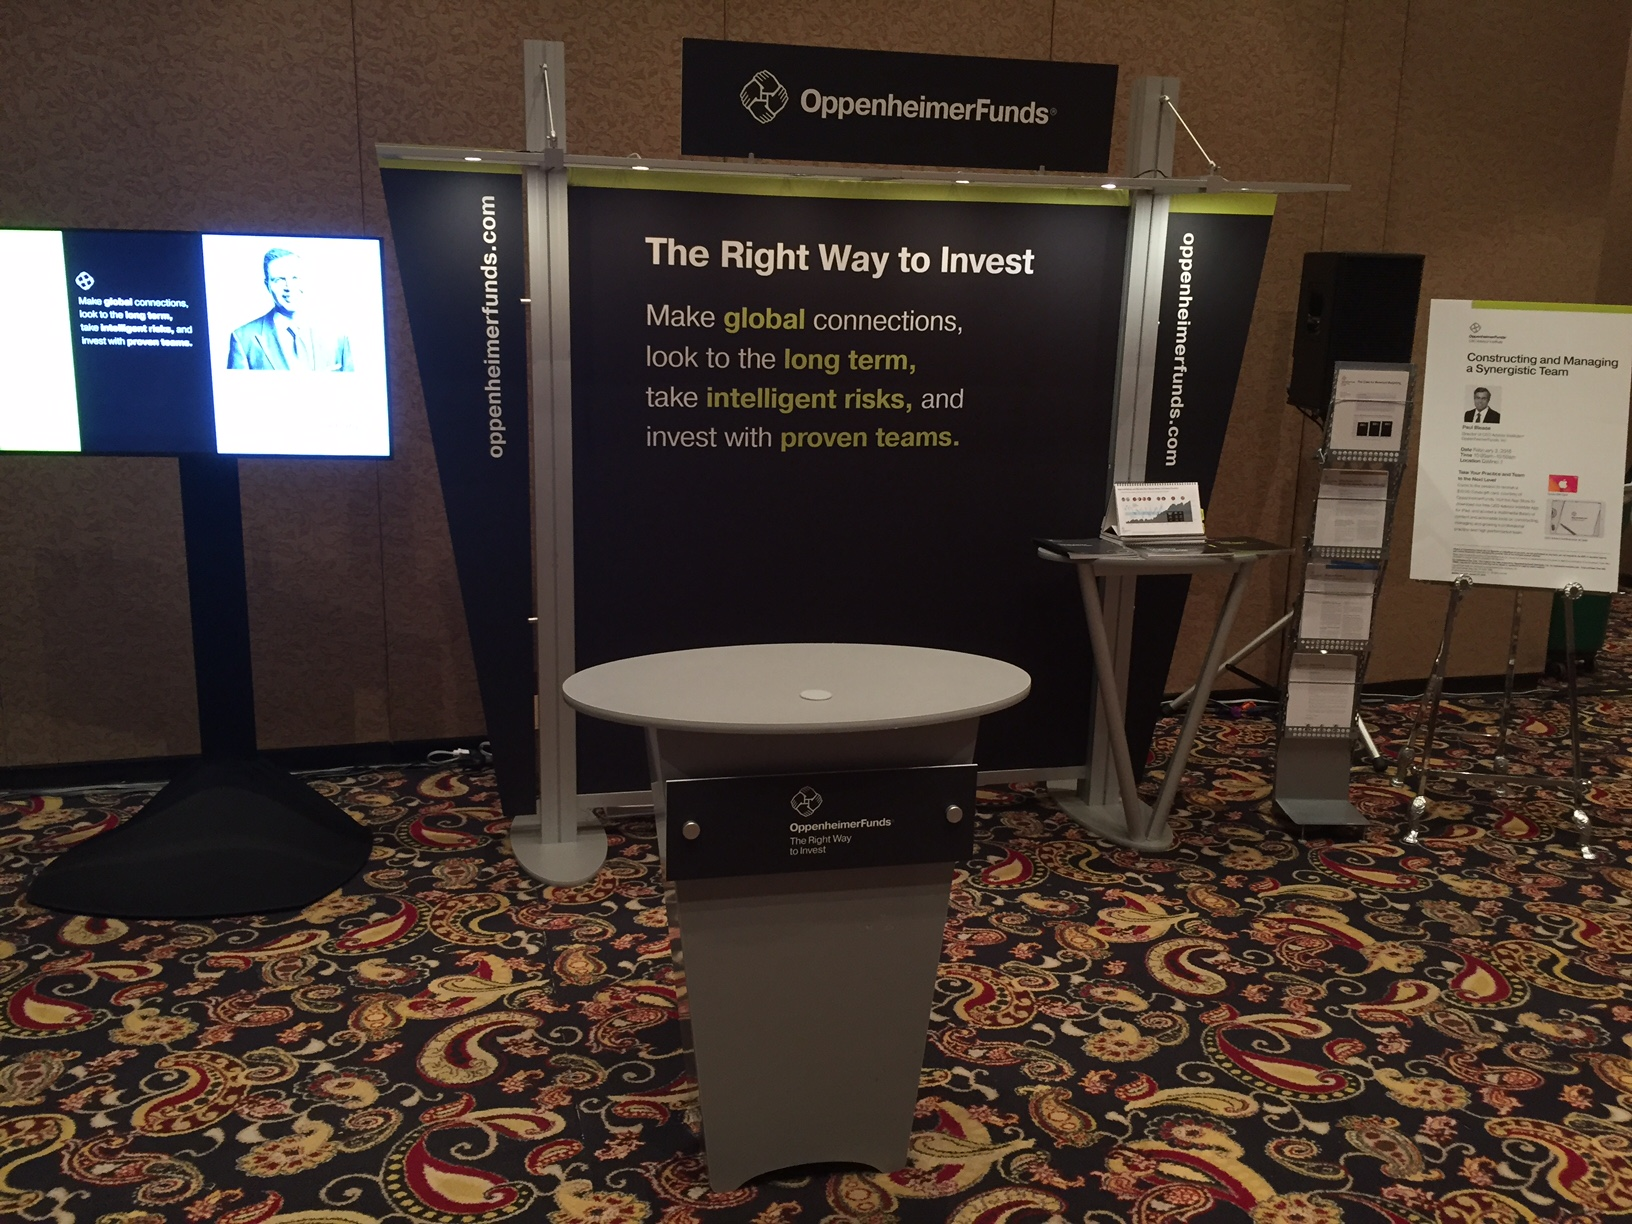 10x10 Picture of Booth at Conference.JPG